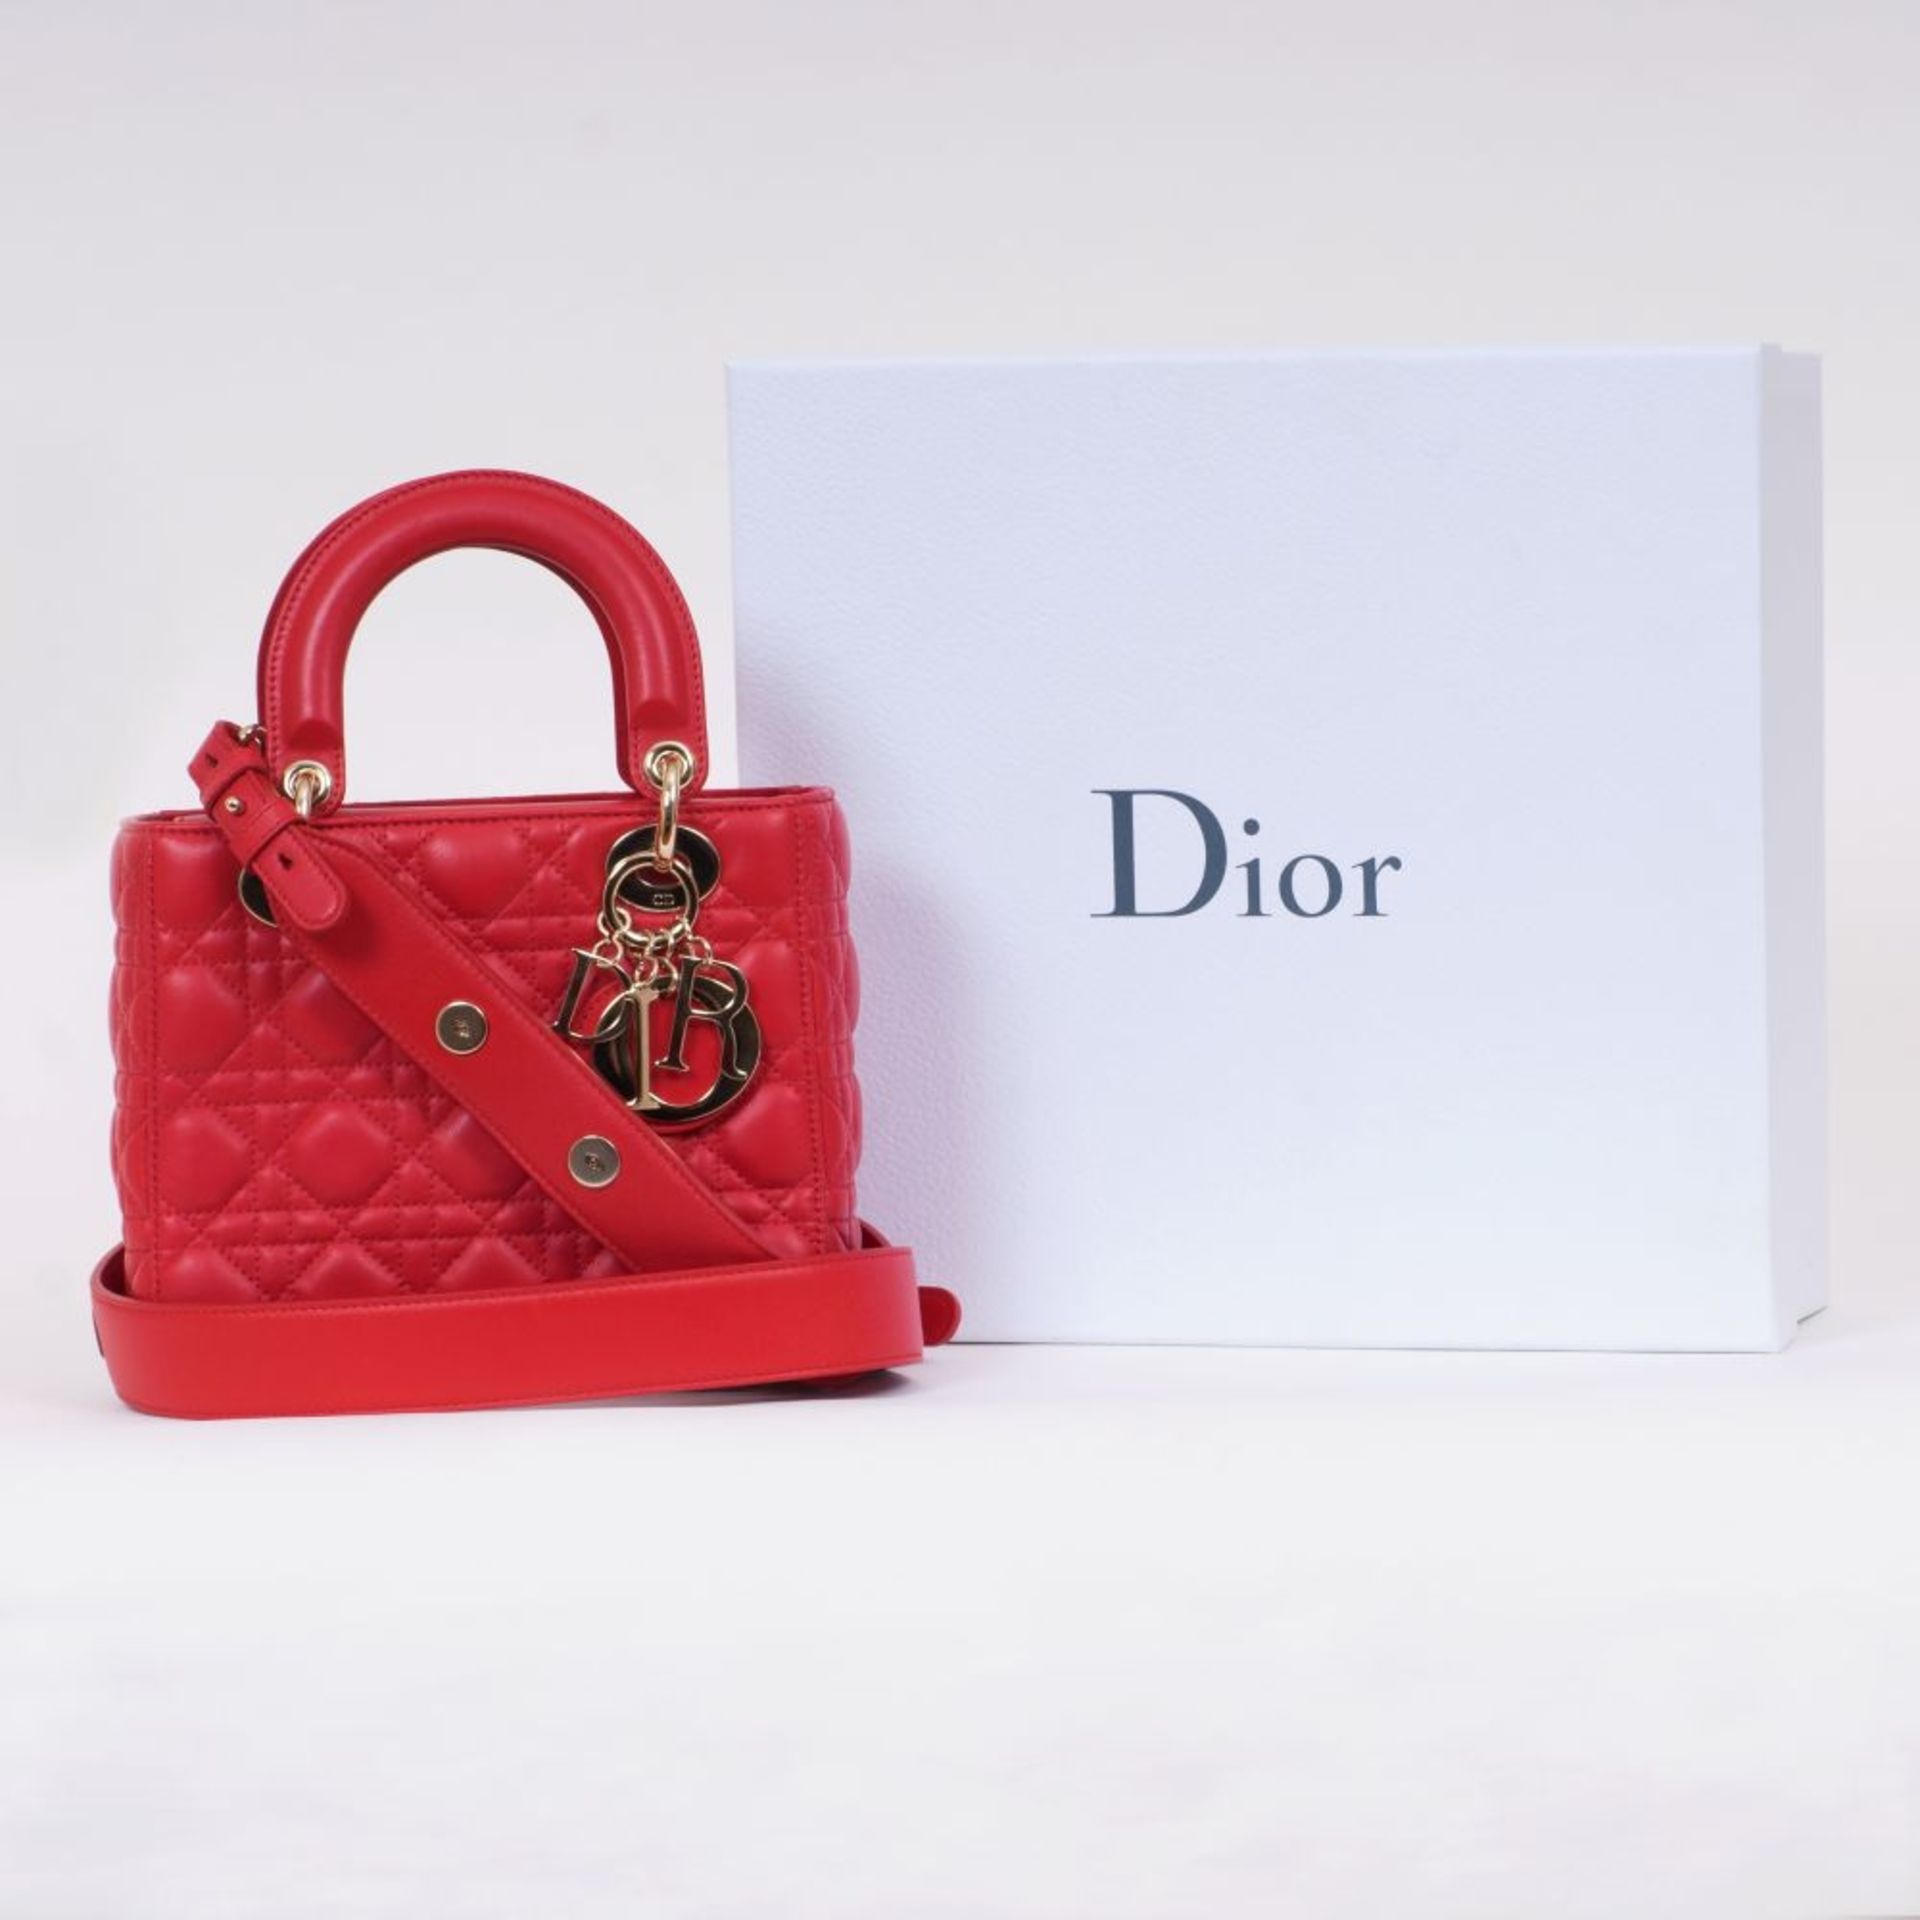 Christian Dior. Lady Dior My ABC Dior Bag Rot. - Image 2 of 2